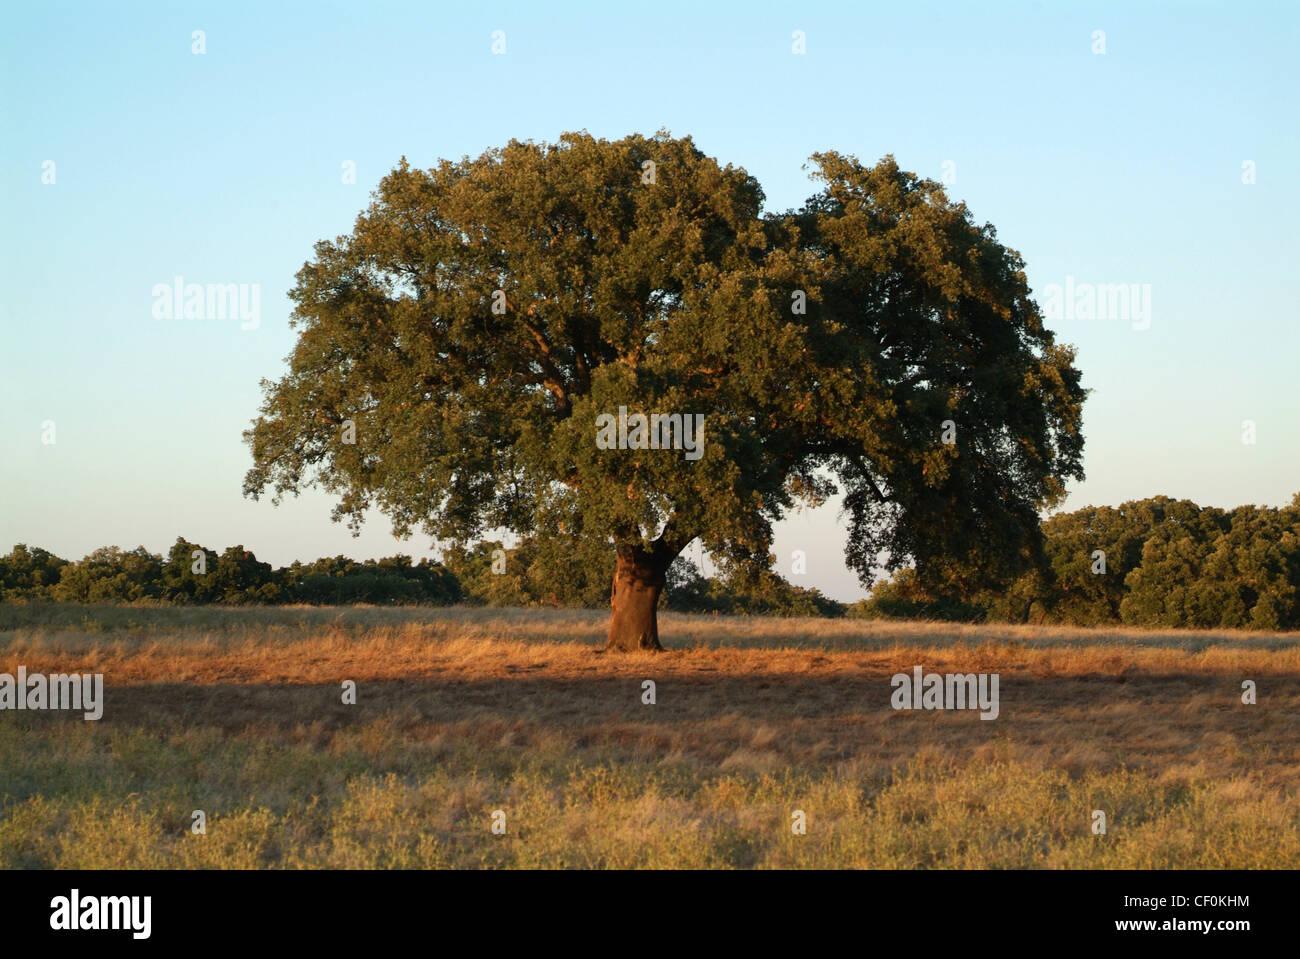 Portugal, Alentejo, tree on the top of the hill Stock Photo